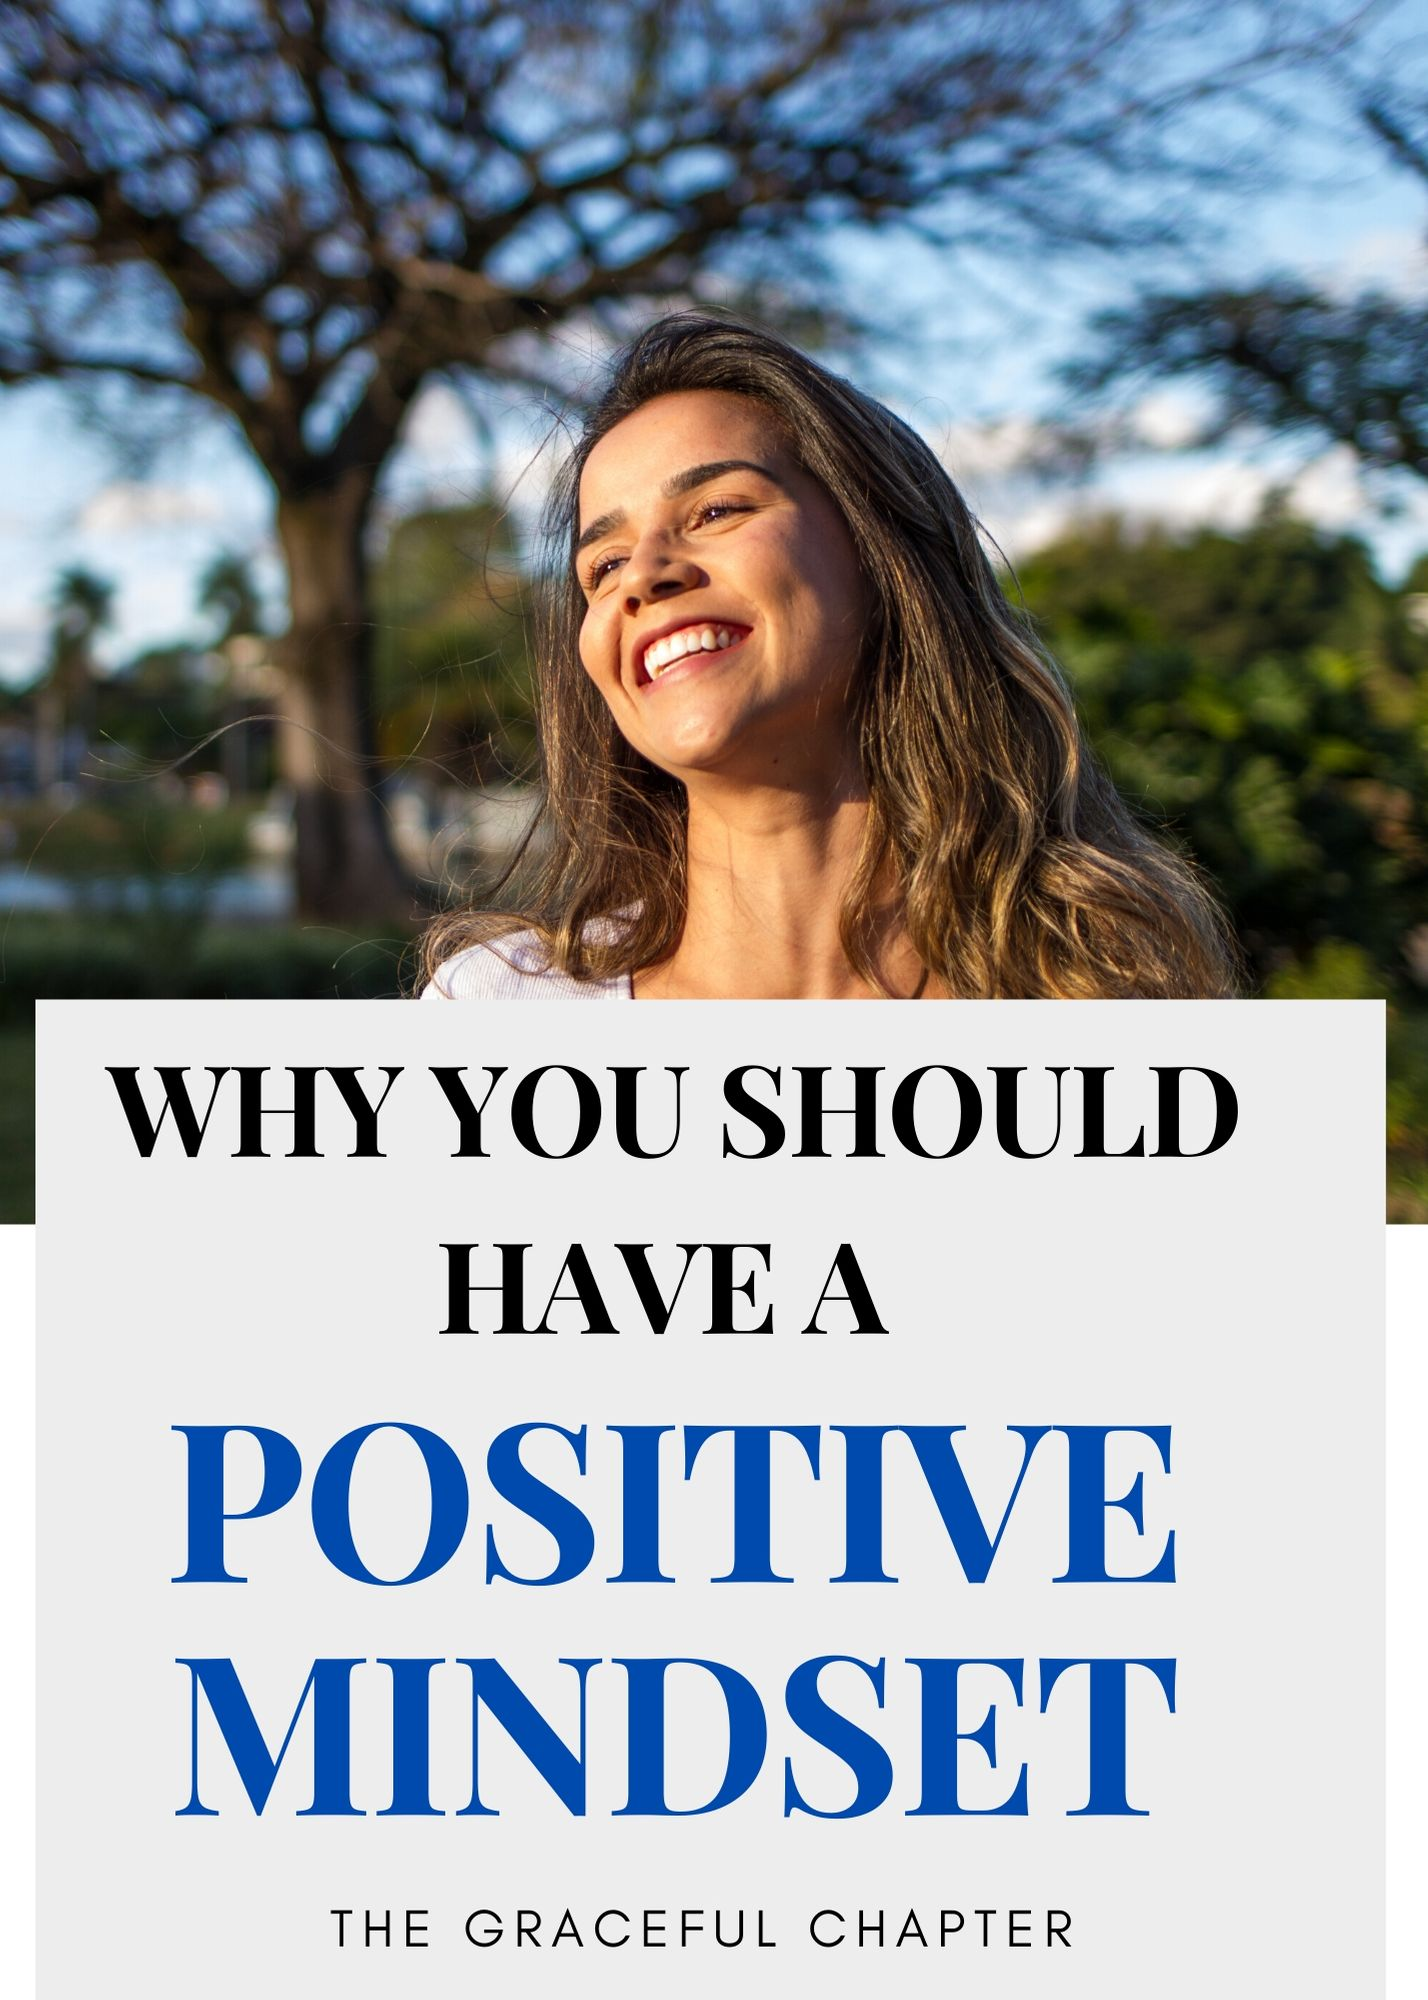 why you should have a positive mindset